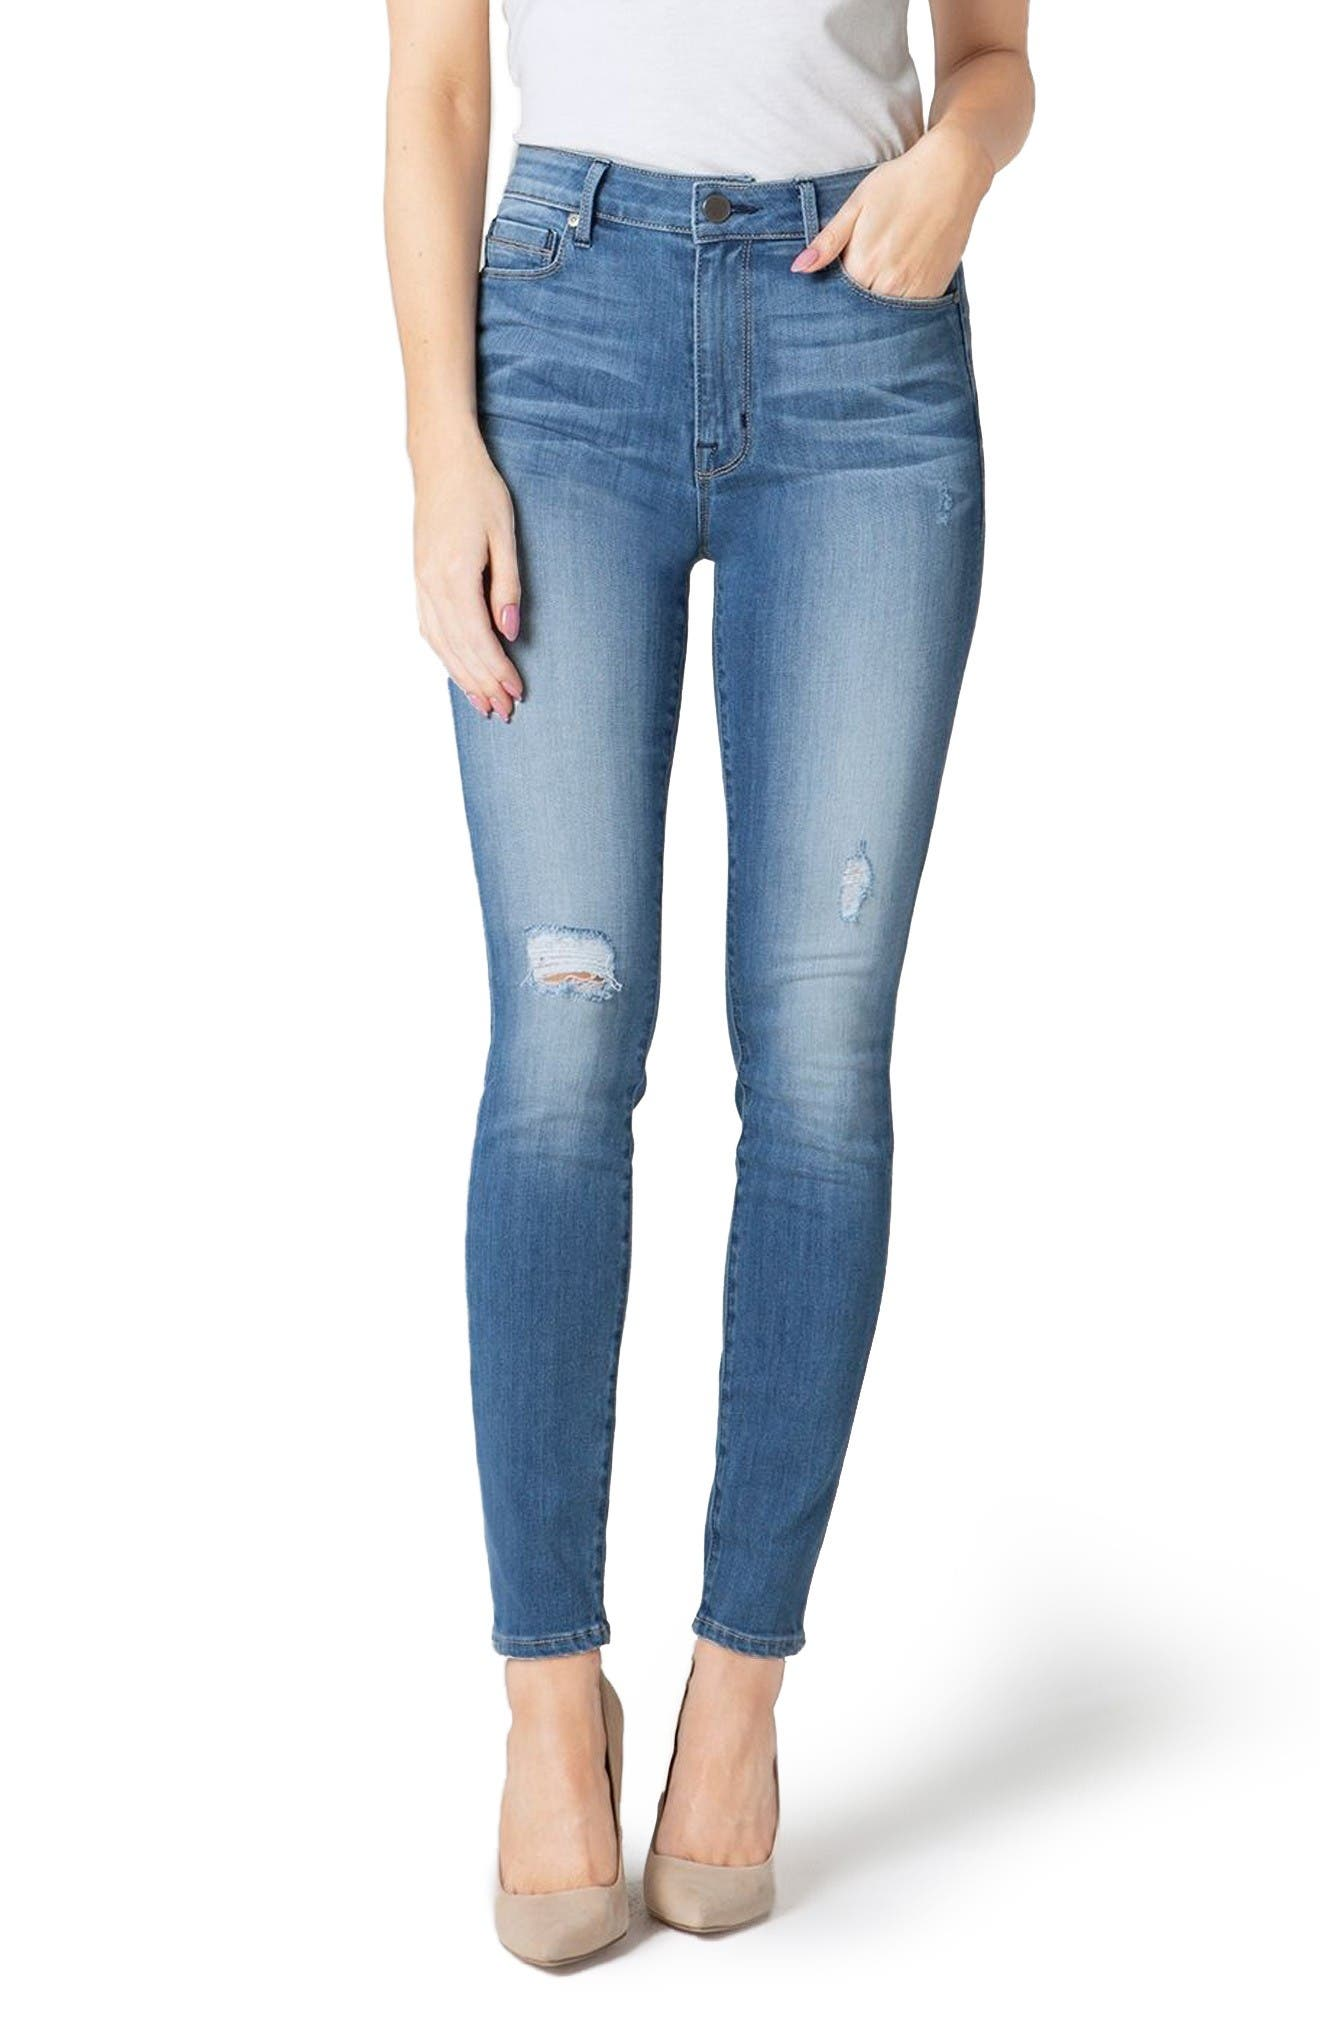 Bombshell High Waist Stretch Skinny Jeans,                             Main thumbnail 1, color,                             Gulf Stream